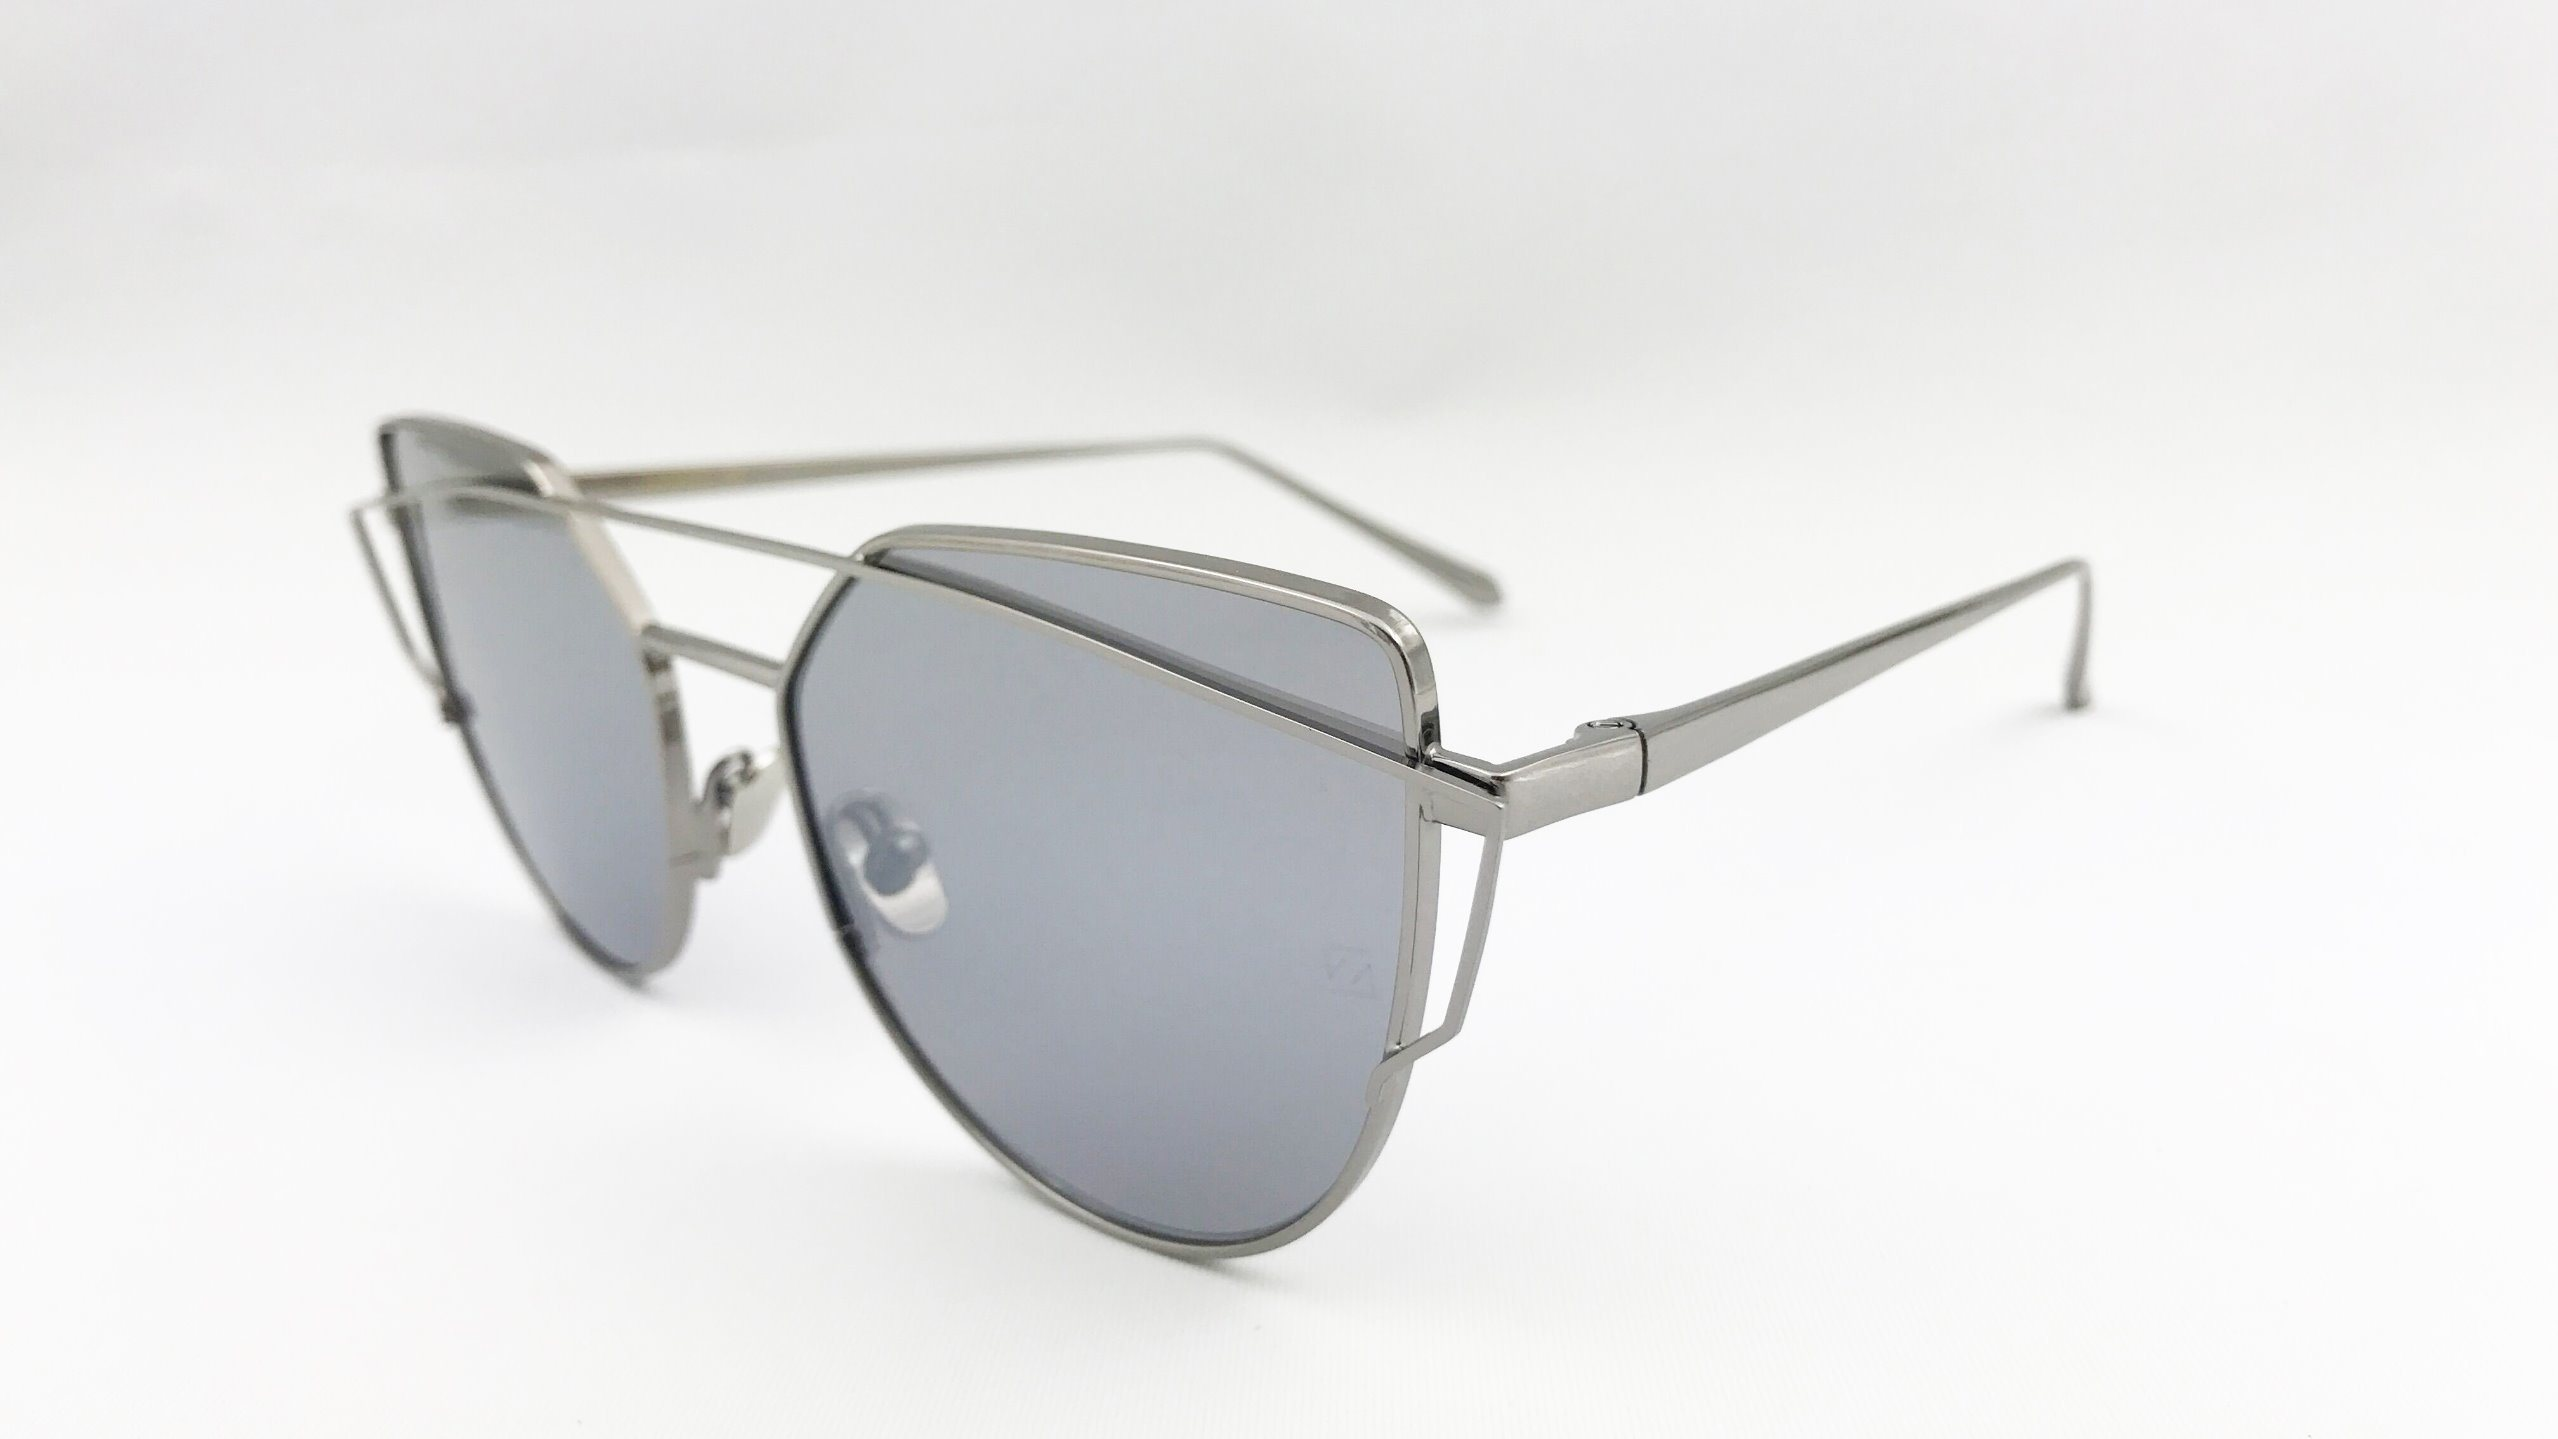 Special Design, Popular Metal Sunglasses for Unisex. Nylon Lens with Silver Mirror